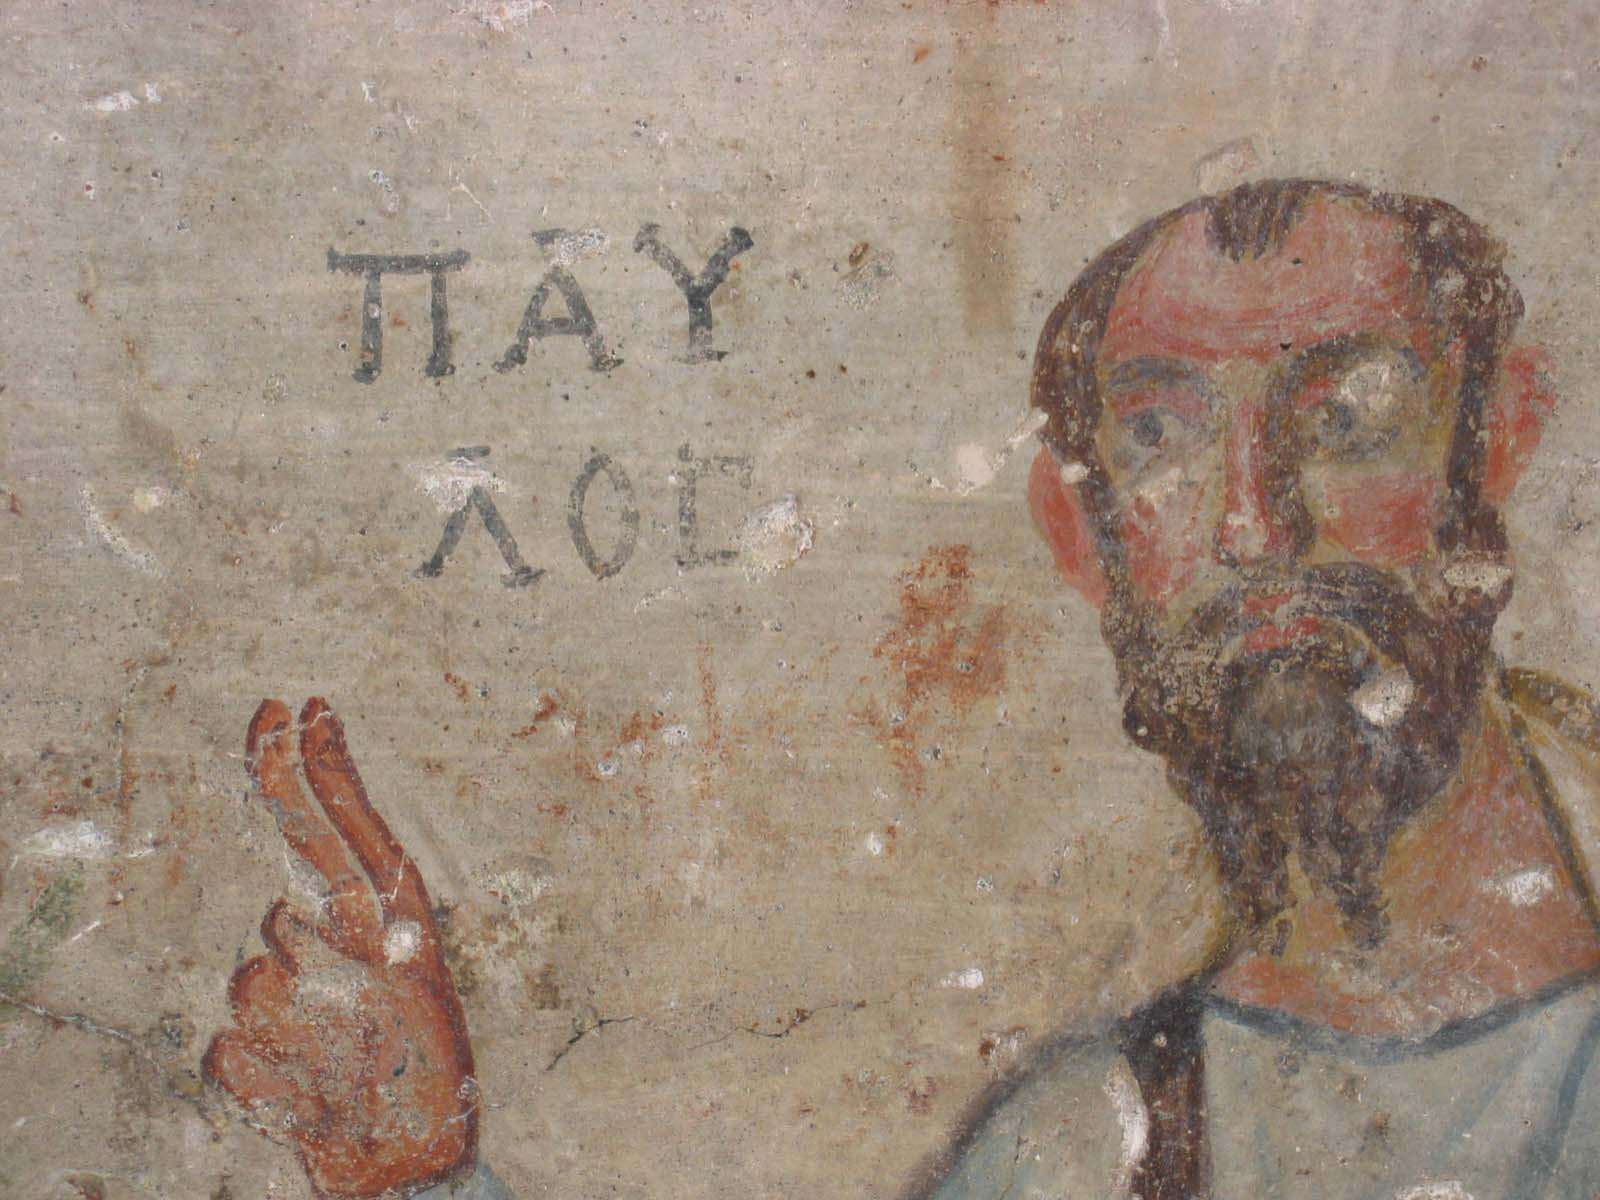 An ancient cave painting of the Apostle Paul found in a cave in Ephesus